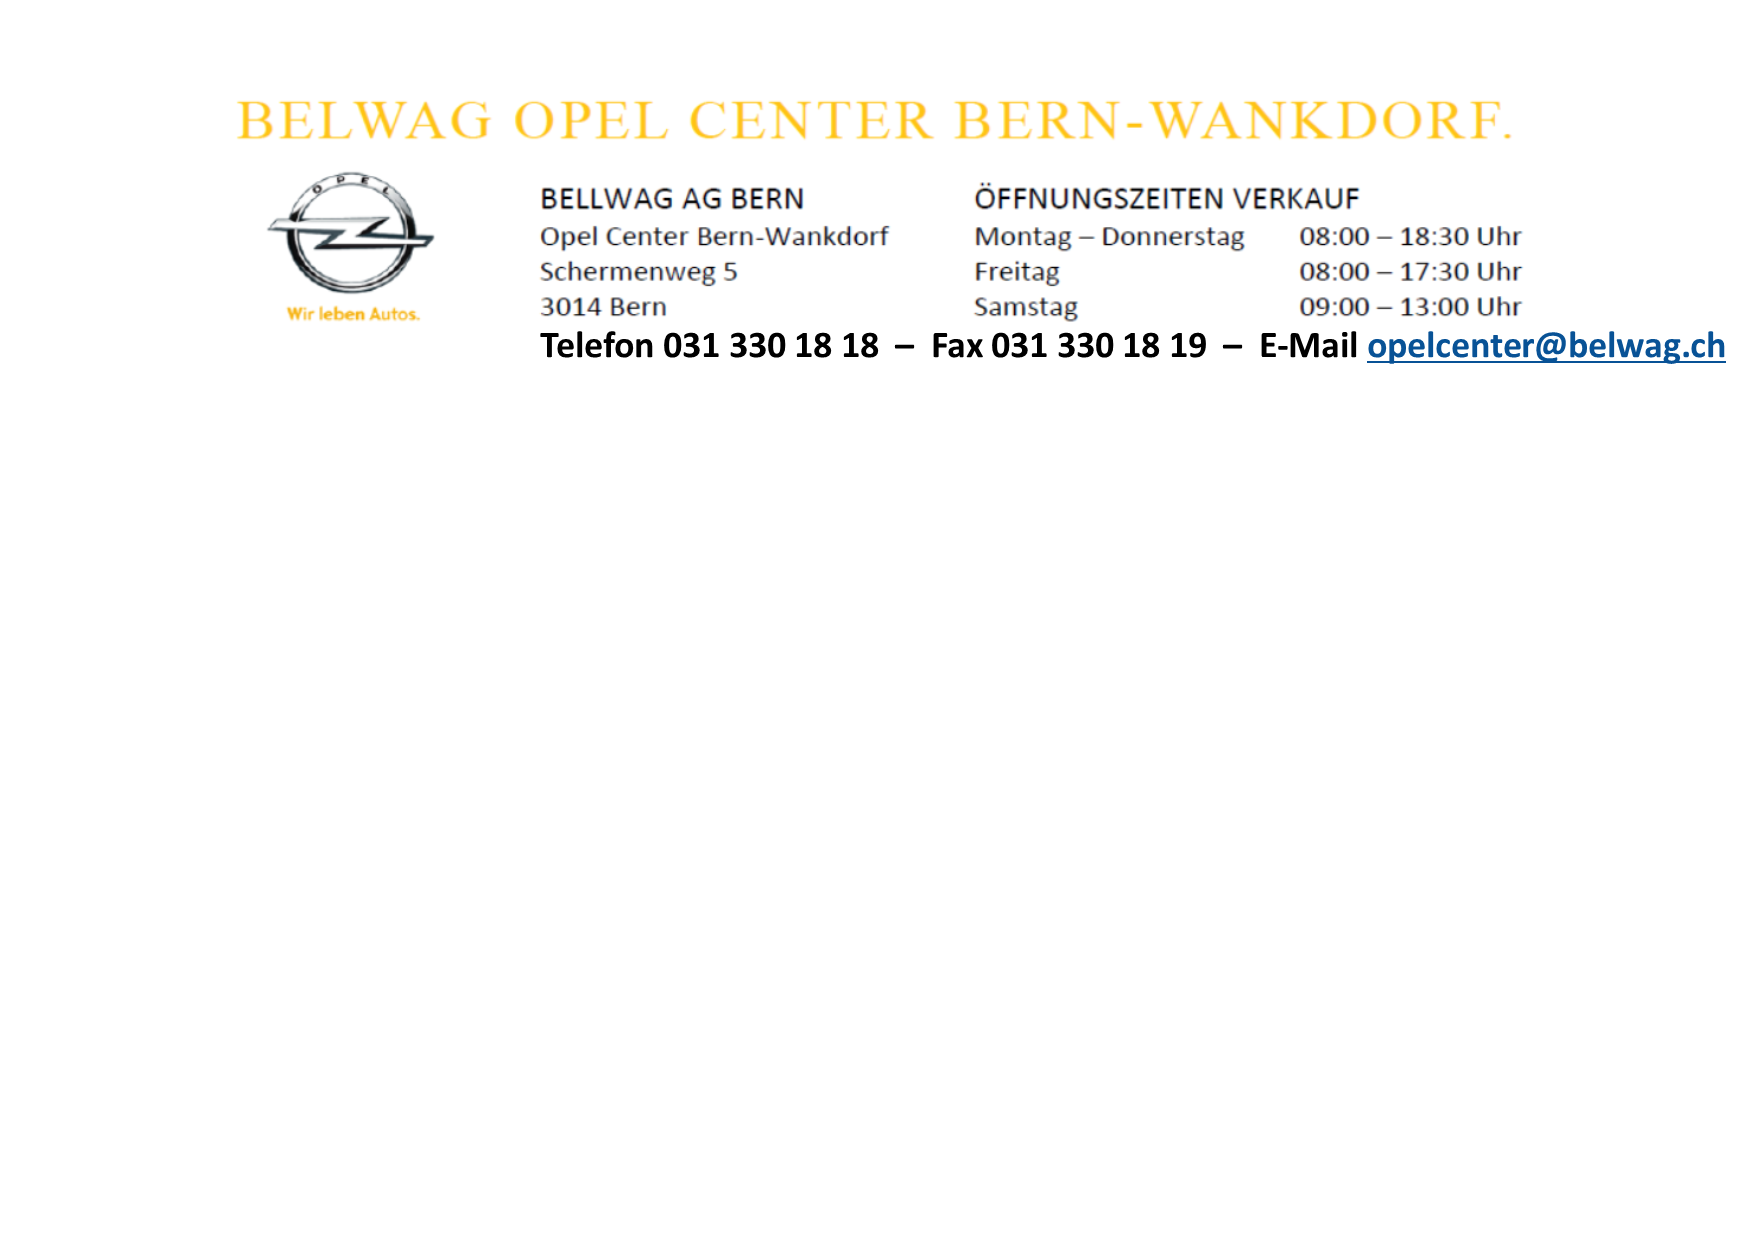 Belwag Opel Center Bern